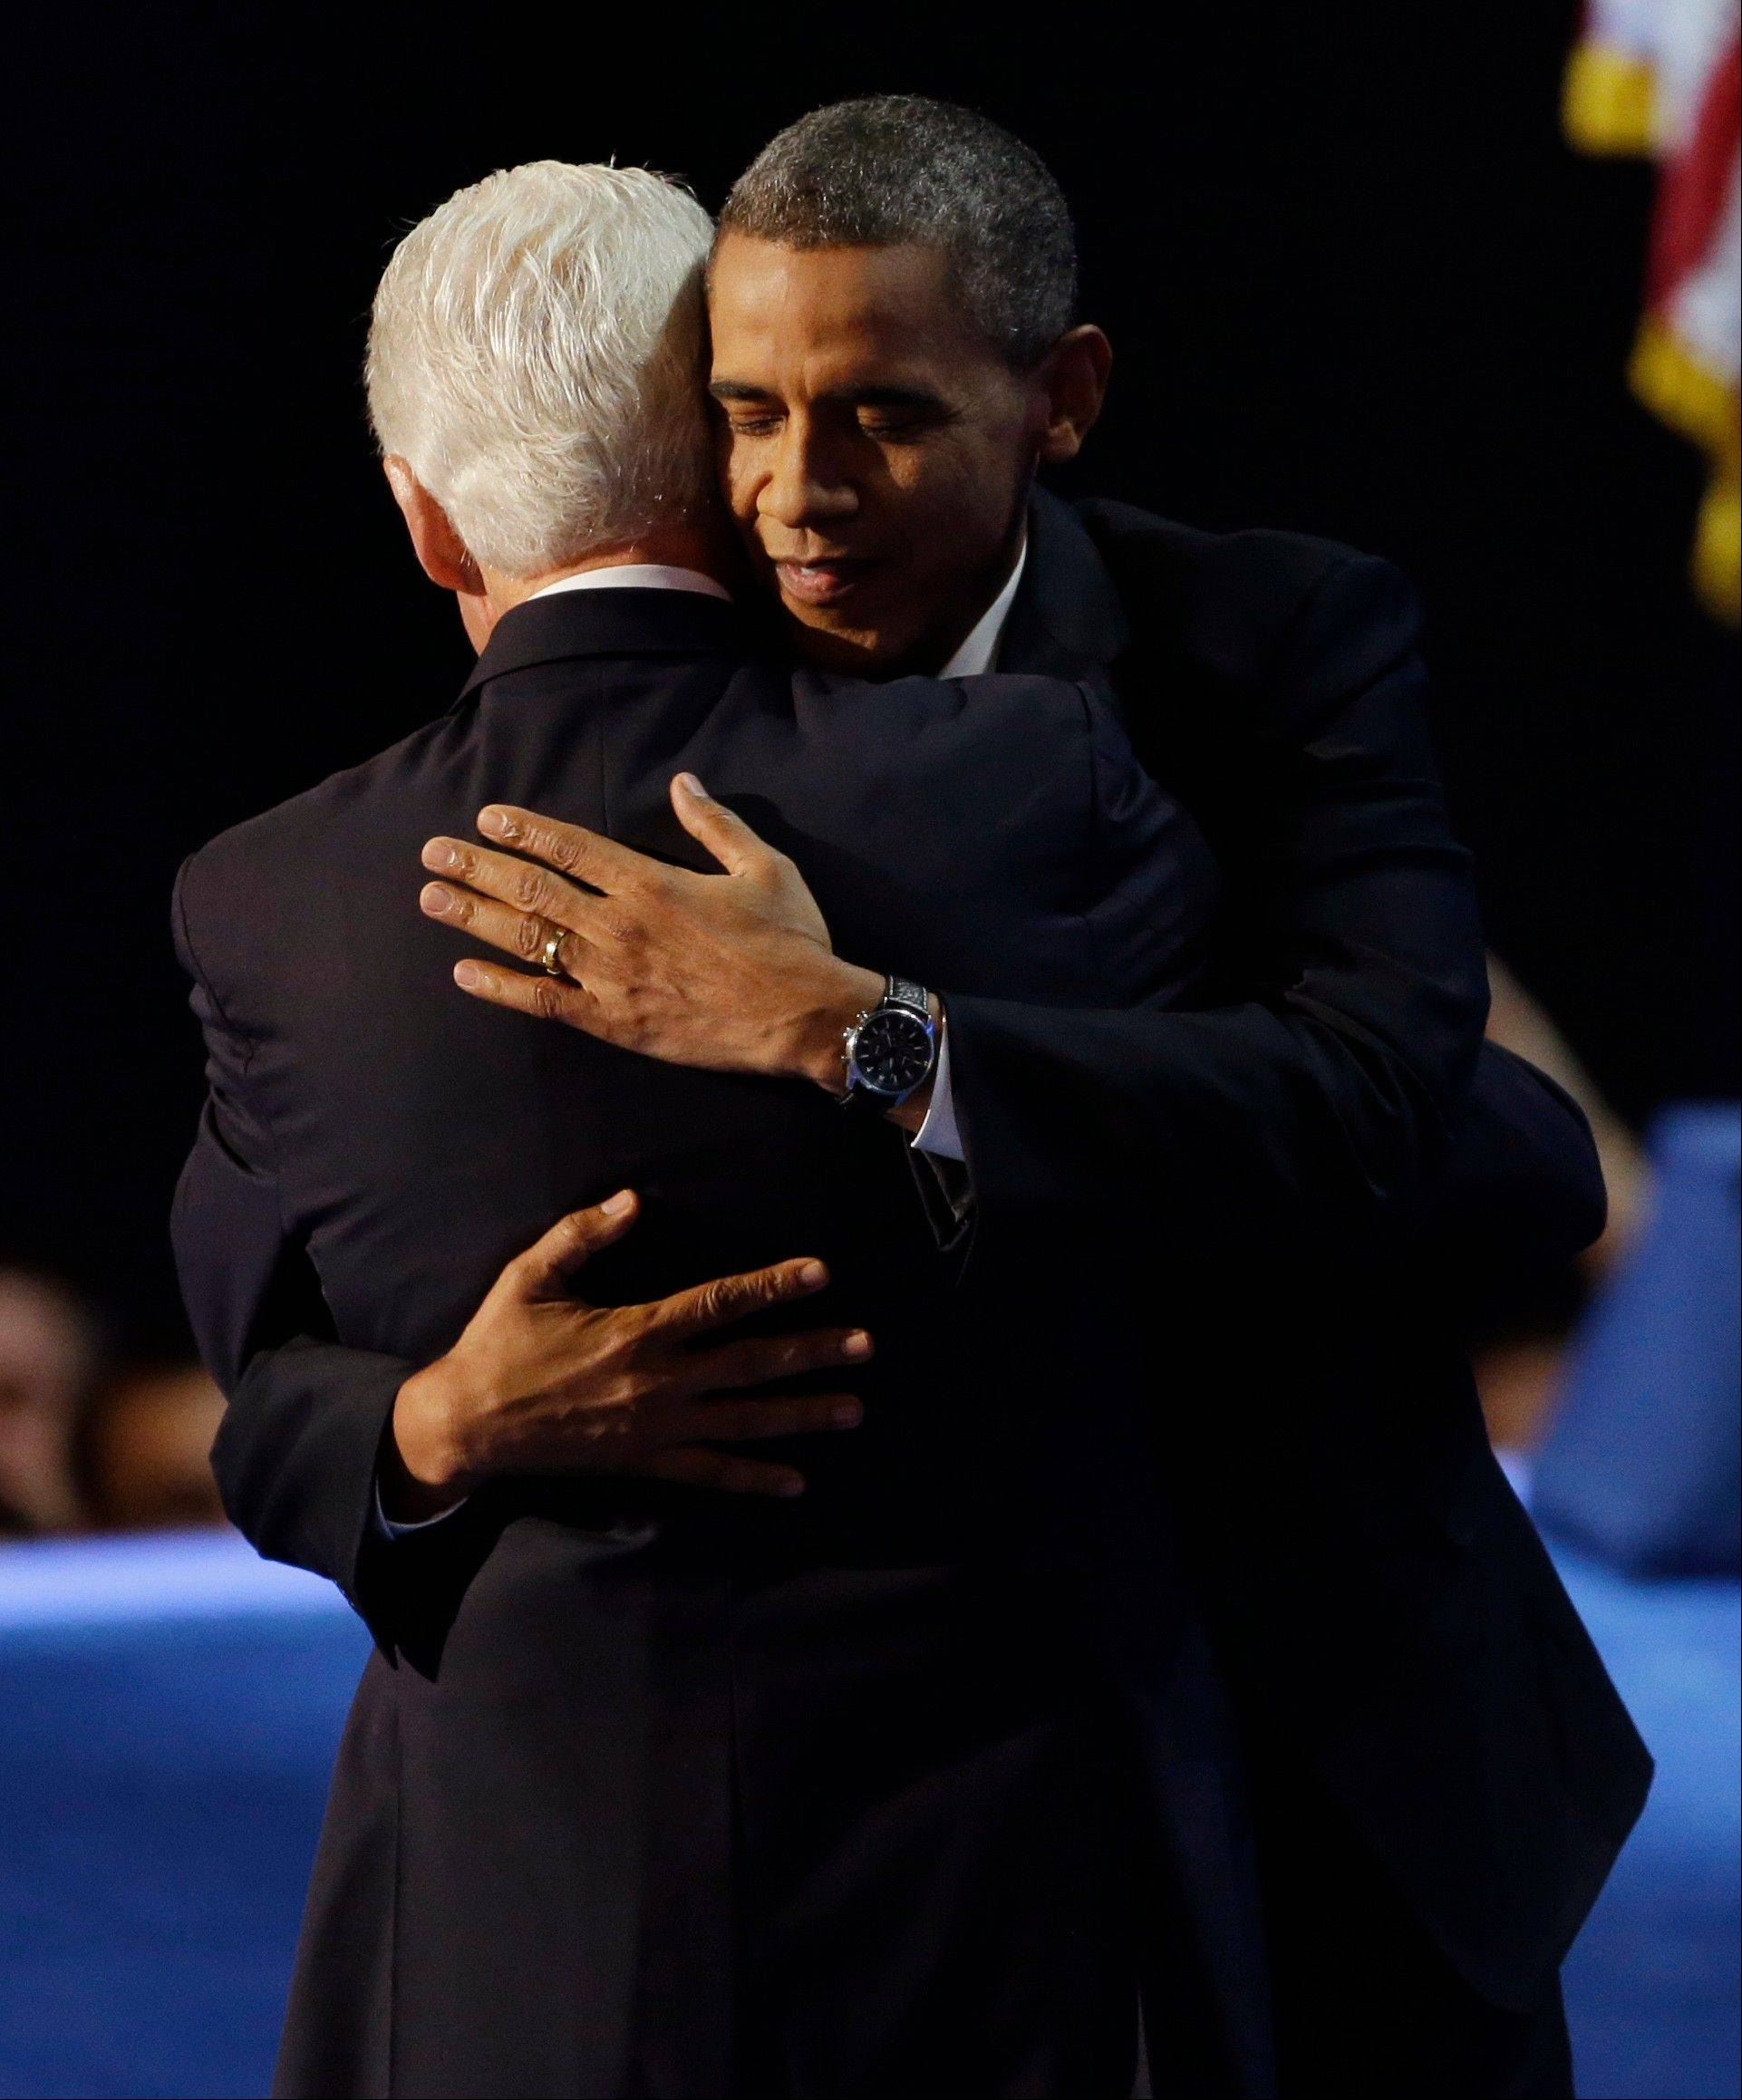 President Barack Obama, right, hugs former President Bill Clinton after Clinton's speech to the Democratic National Convention in Charlotte, N.C., on Wednesday.